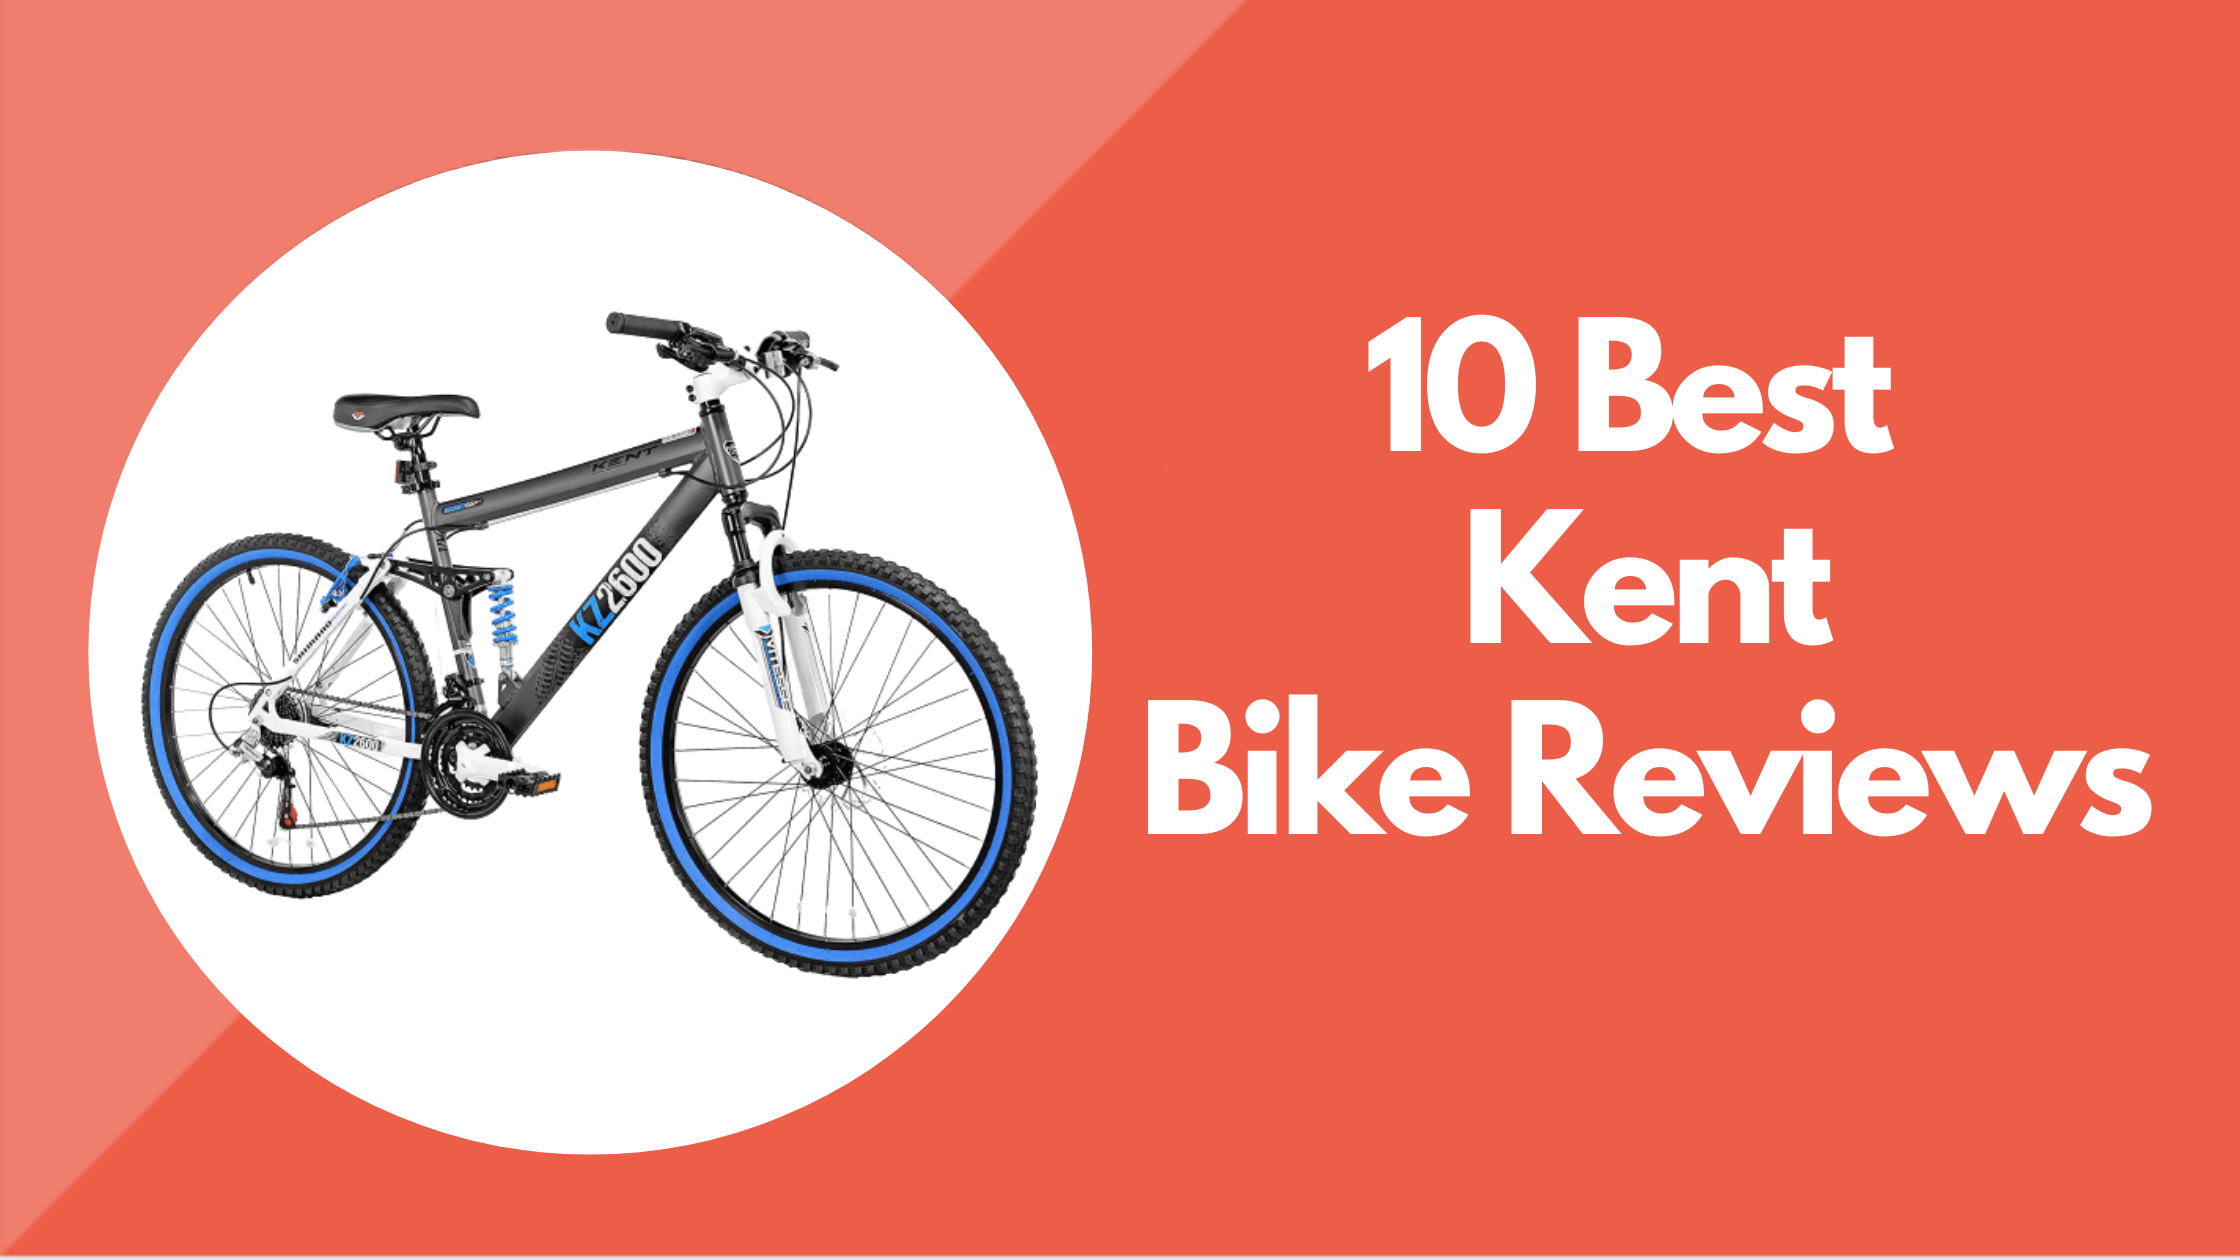 kent bike reviews